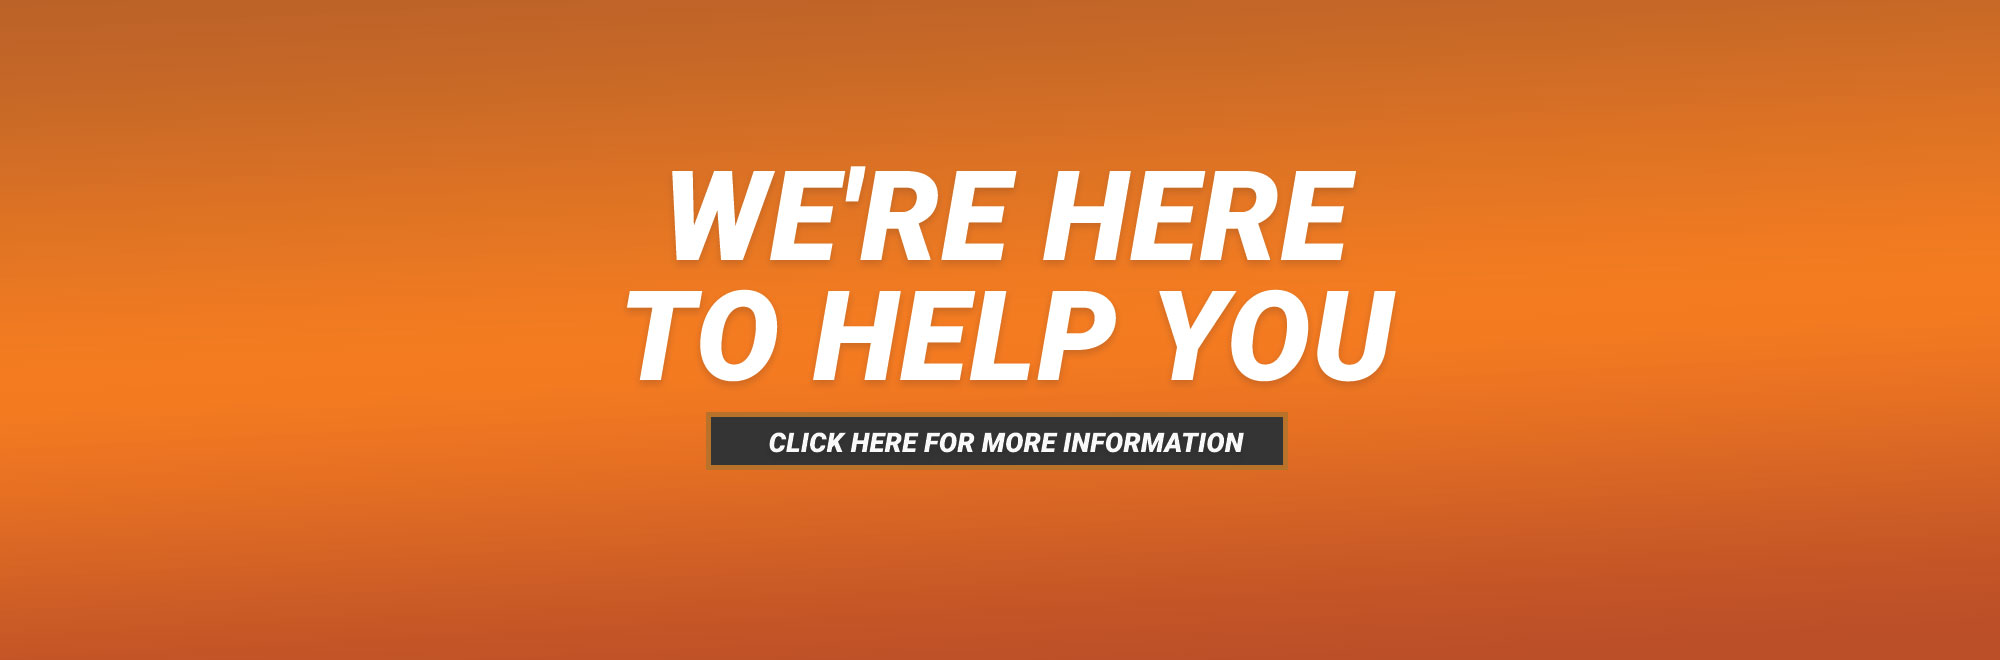 We're here to help you. Find more information here.